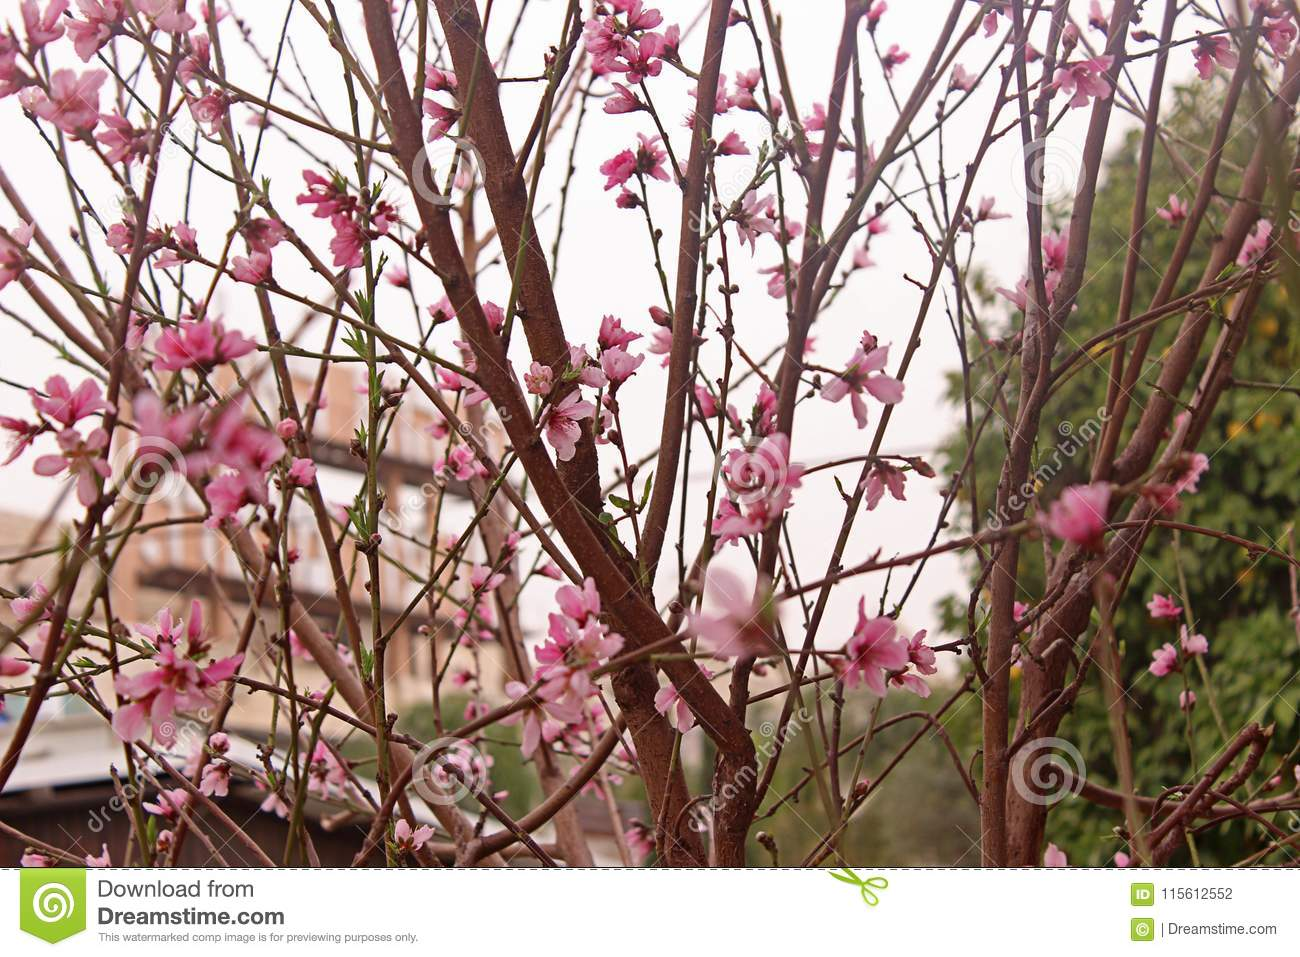 Peach Blossom Peach Tree With Beautiful Pink Peach Flowers Stock